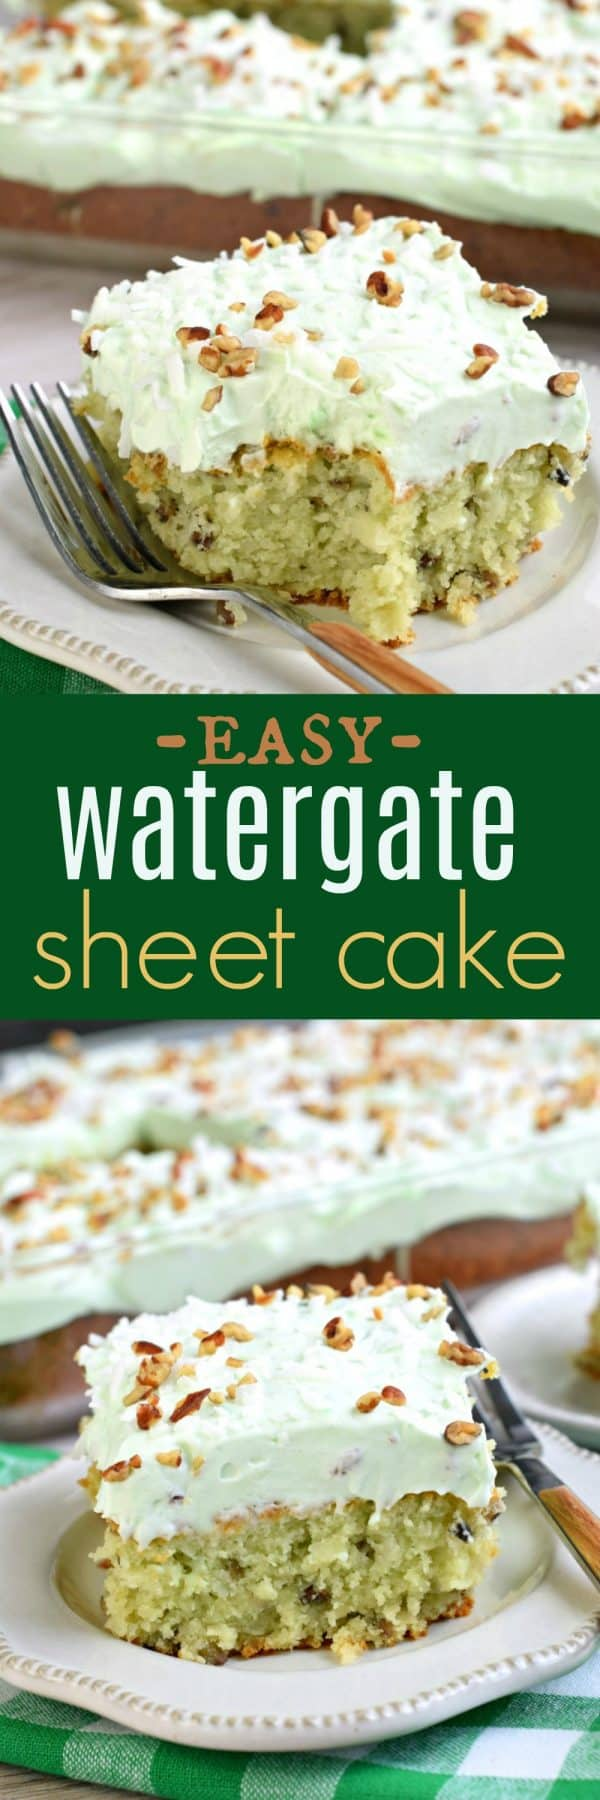 This Watergate Sheet Cake is nutty and moist thanks to pistachio pudding and pecans. Topped with a sweet, light whipped cream topping and coconut, this cake has it ALL, and it's easy to make too!